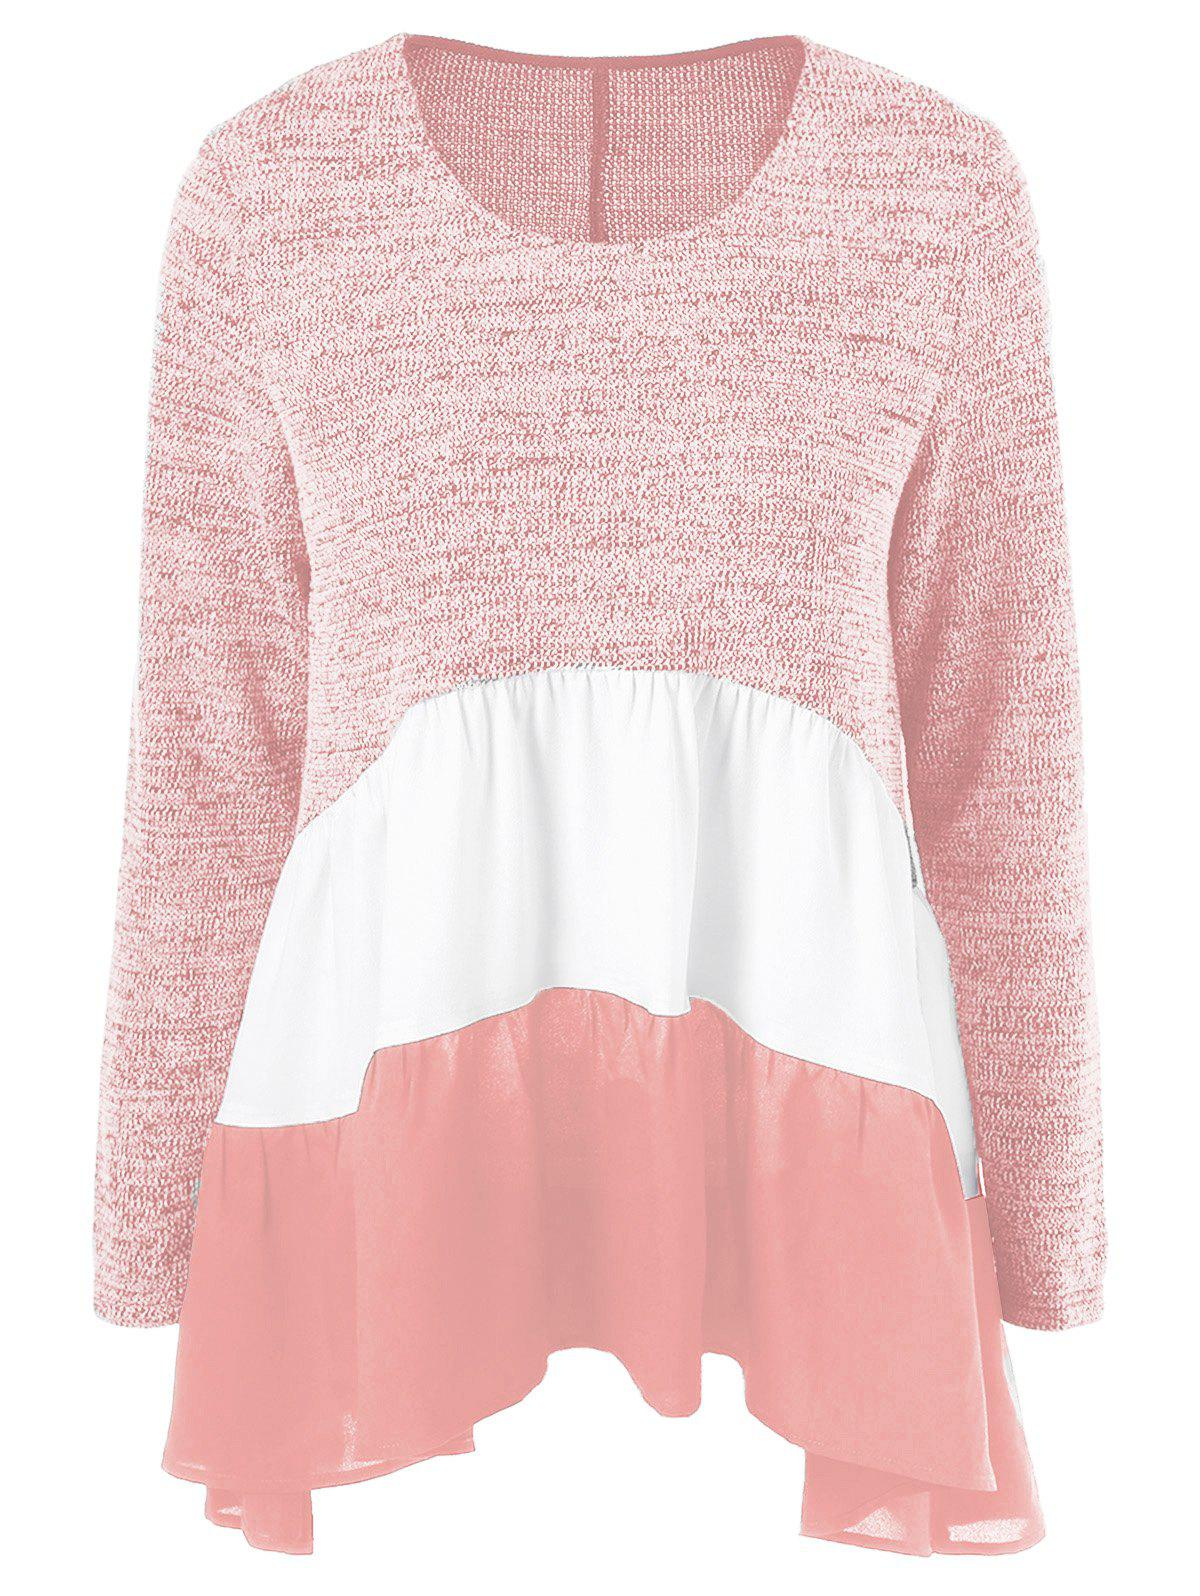 Color Block Tiered T-ShirtWOMEN<br><br>Size: L; Color: ORANGEPINK; Material: Polyester,Rayon; Sleeve Length: Full; Collar: Scoop Neck; Style: Casual; Pattern Type: Patchwork; Season: Fall,Spring,Winter; Weight: 0.380kg; Package Contents: 1 x T-Shirt;